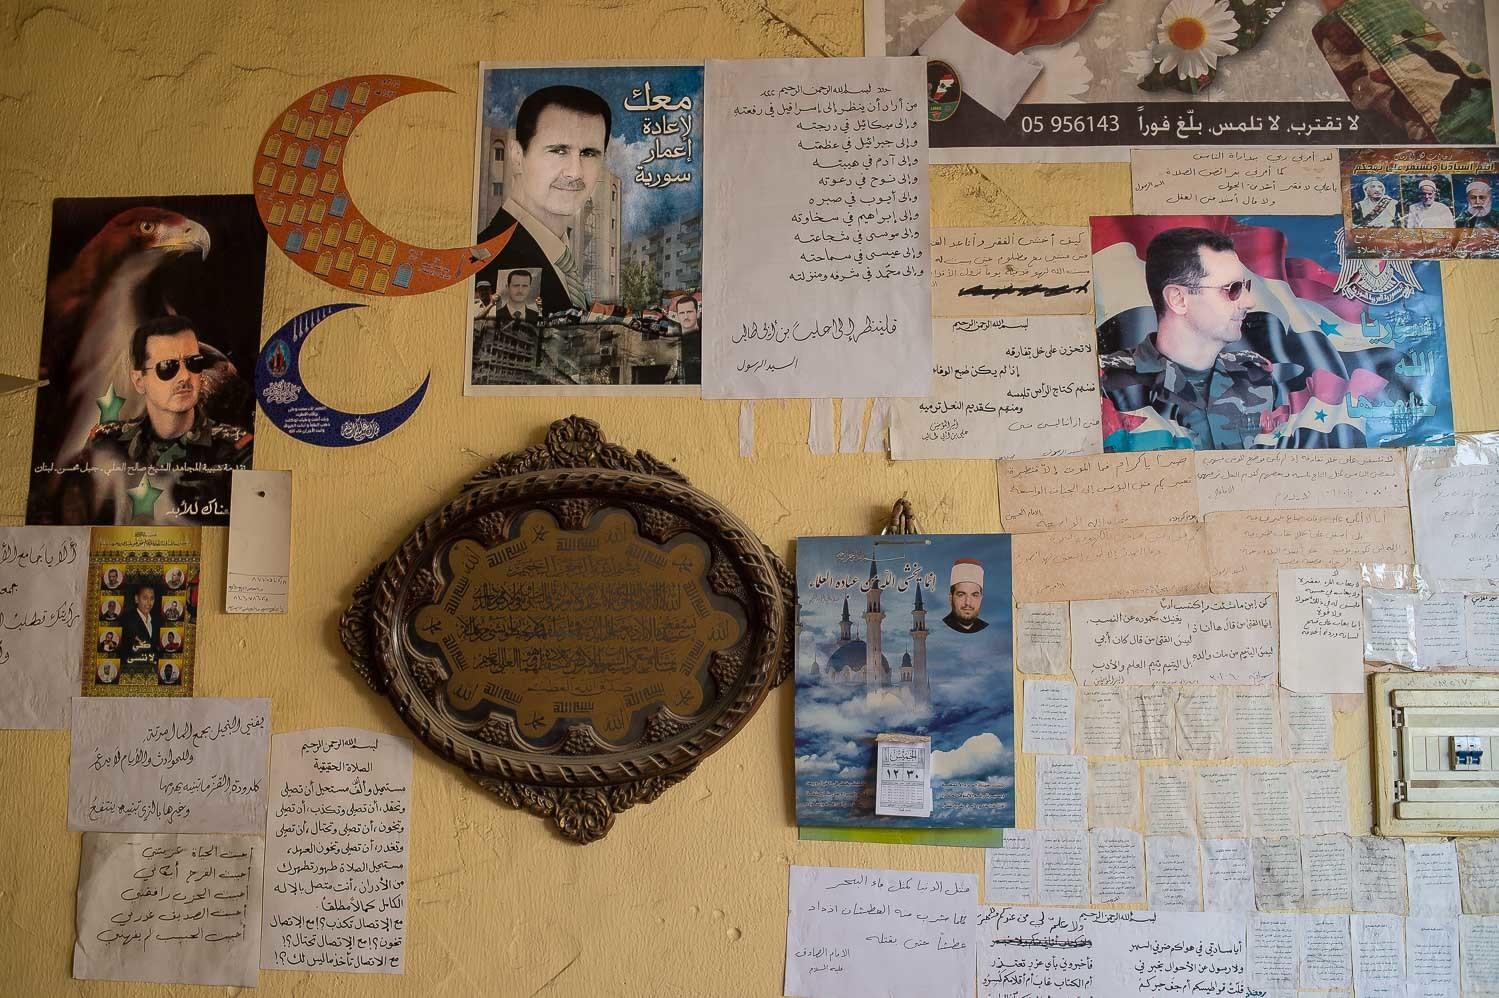 Posters of Bashar al Assad decorate the wall of a local coffee house in the Jabal Mohsen neighborhood, Tripoli. Most of the community supports Assad, however it's very uncommon to find someone approving his violent methods.